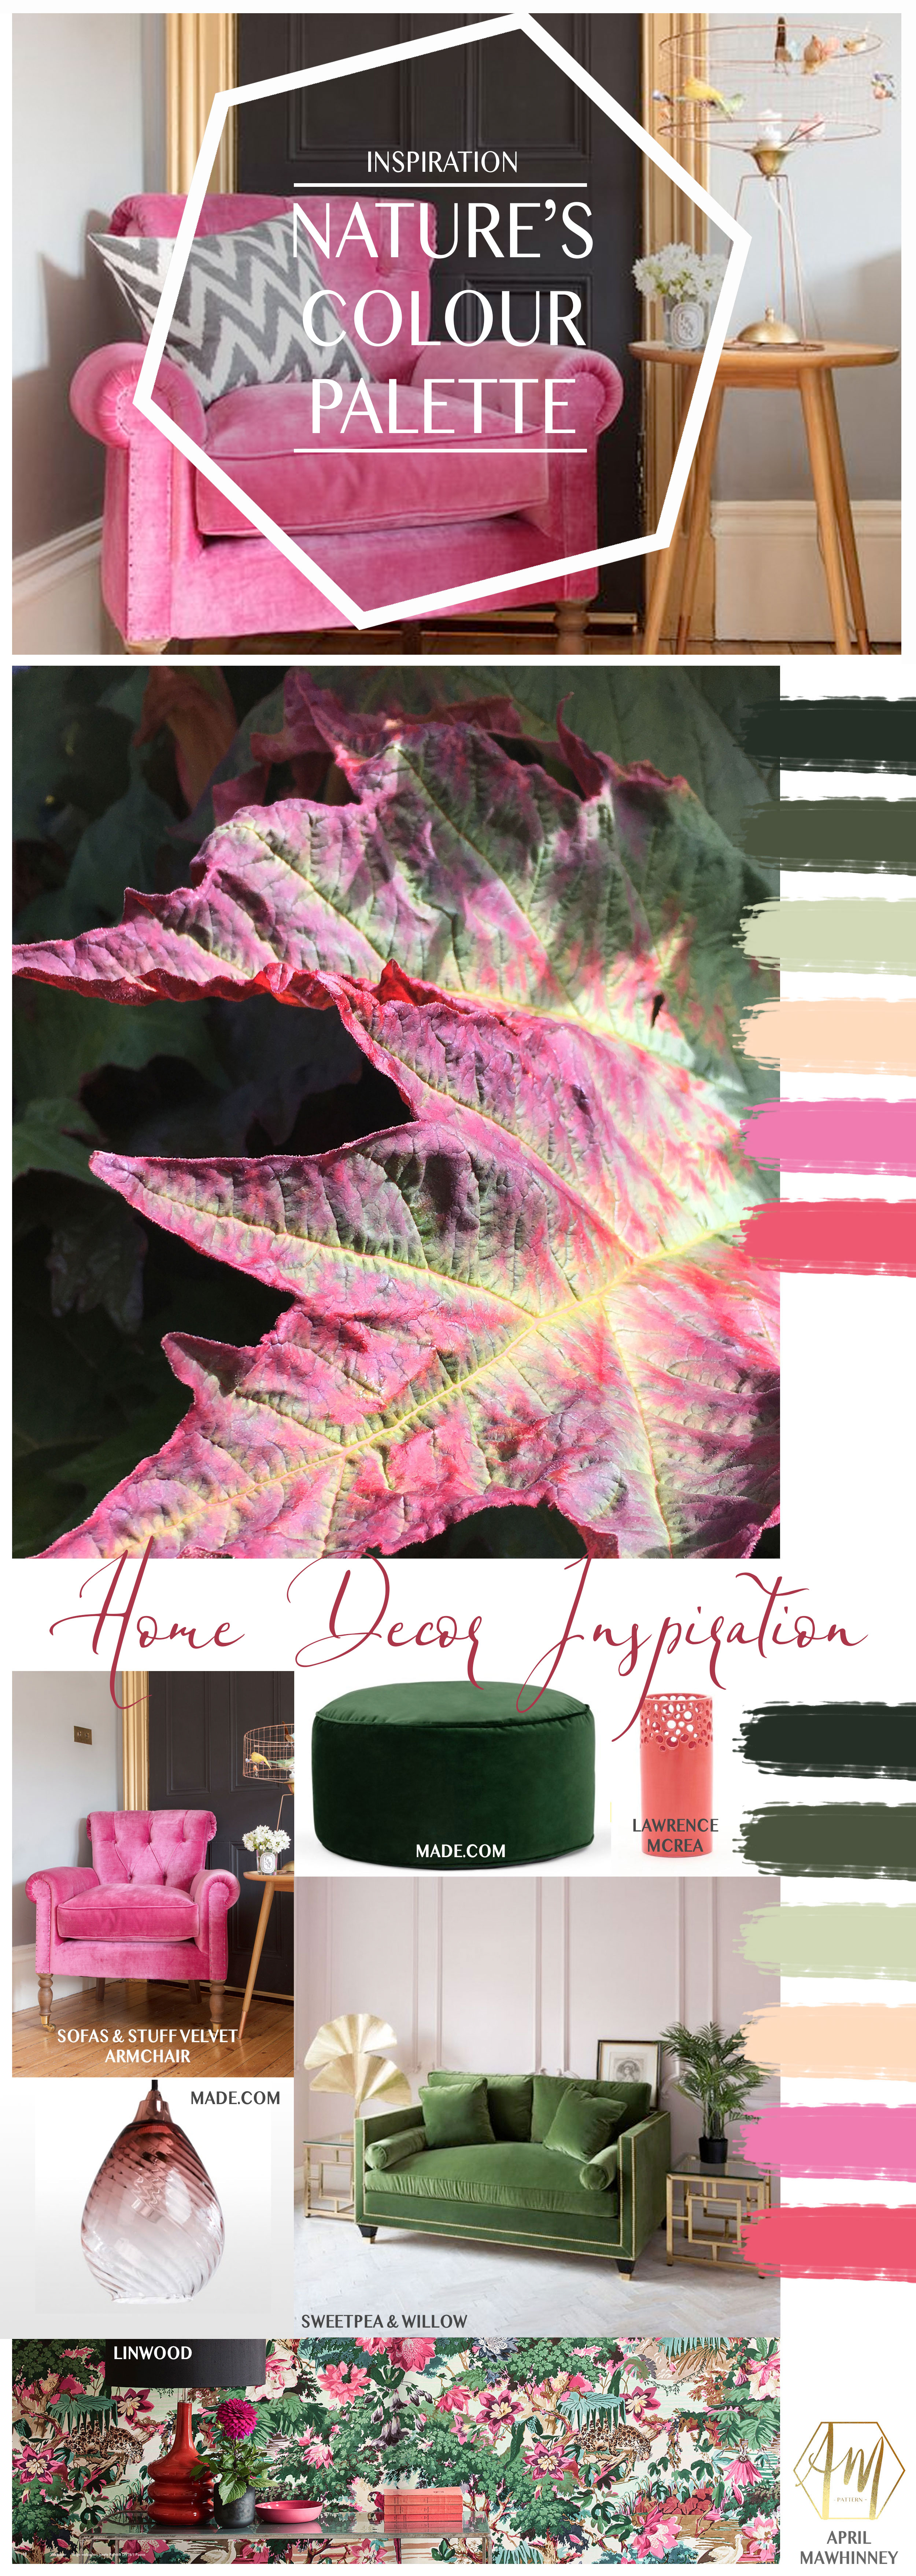 Nature's Colour Palette Inspiration for Home Decor | Interior design | Textile Design | Surface Pattern Design | April Mawhinnney Design Studio